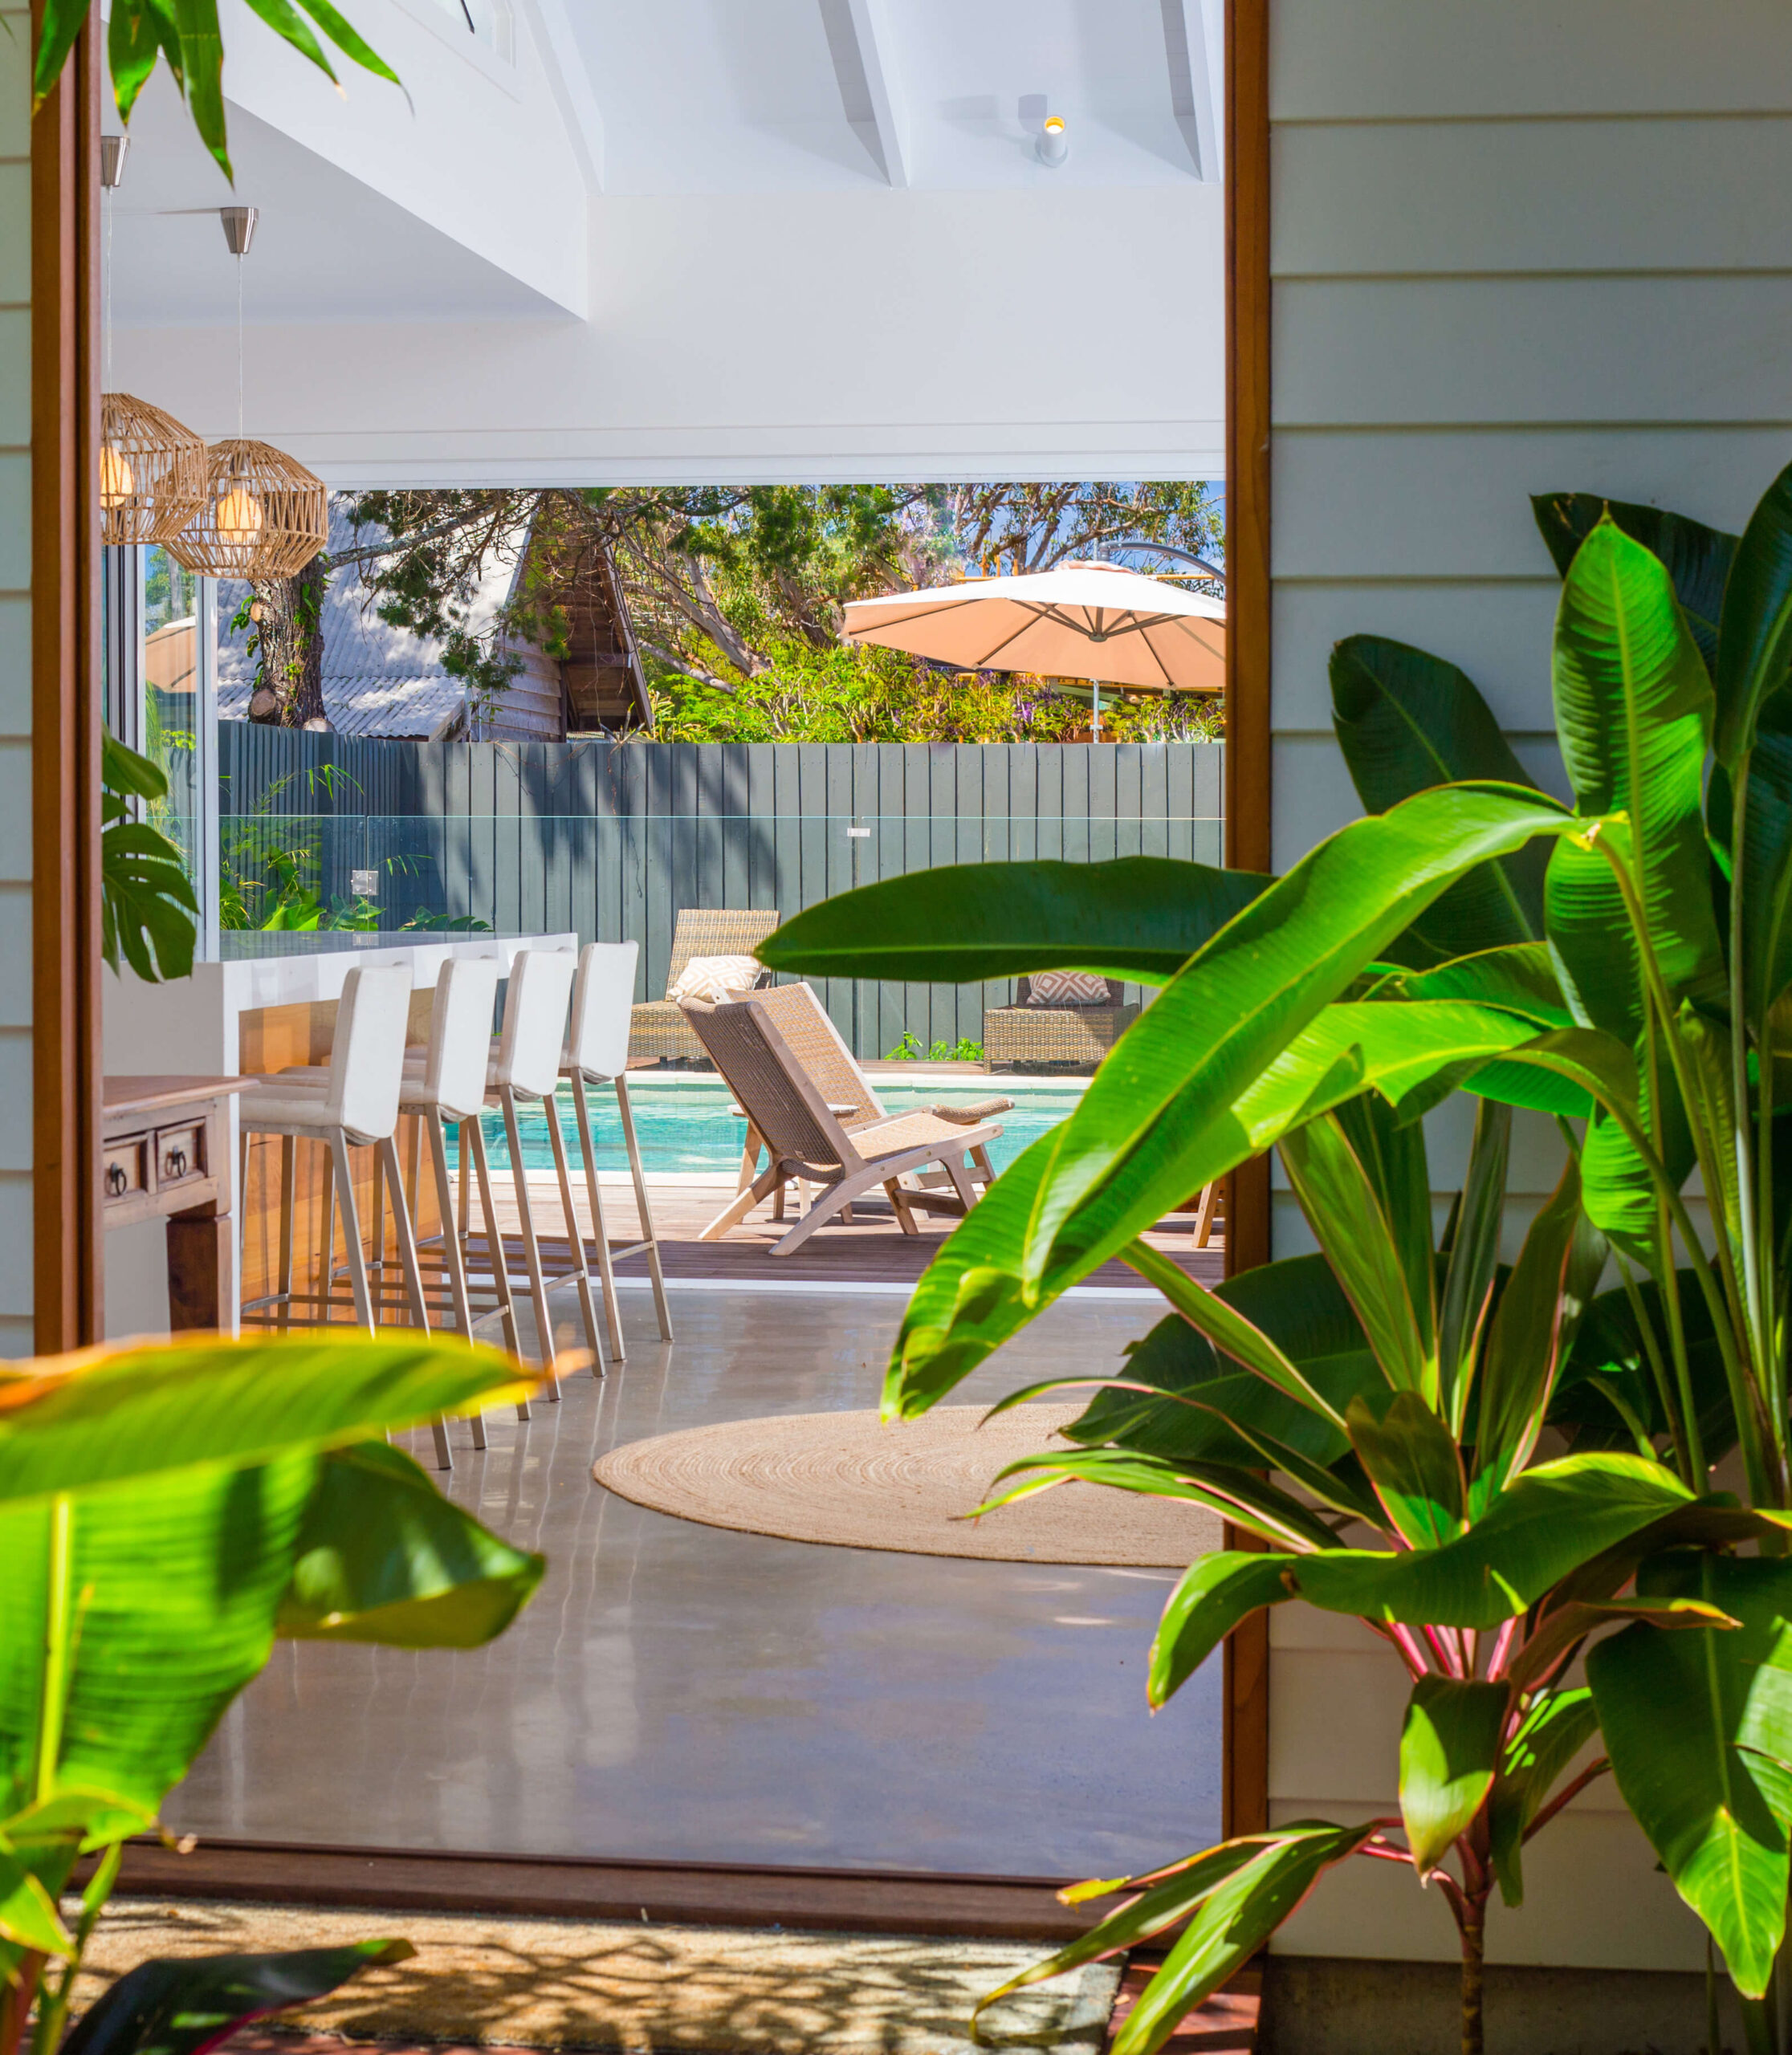 property shoot photographer byron bay lennox head real estate cropped